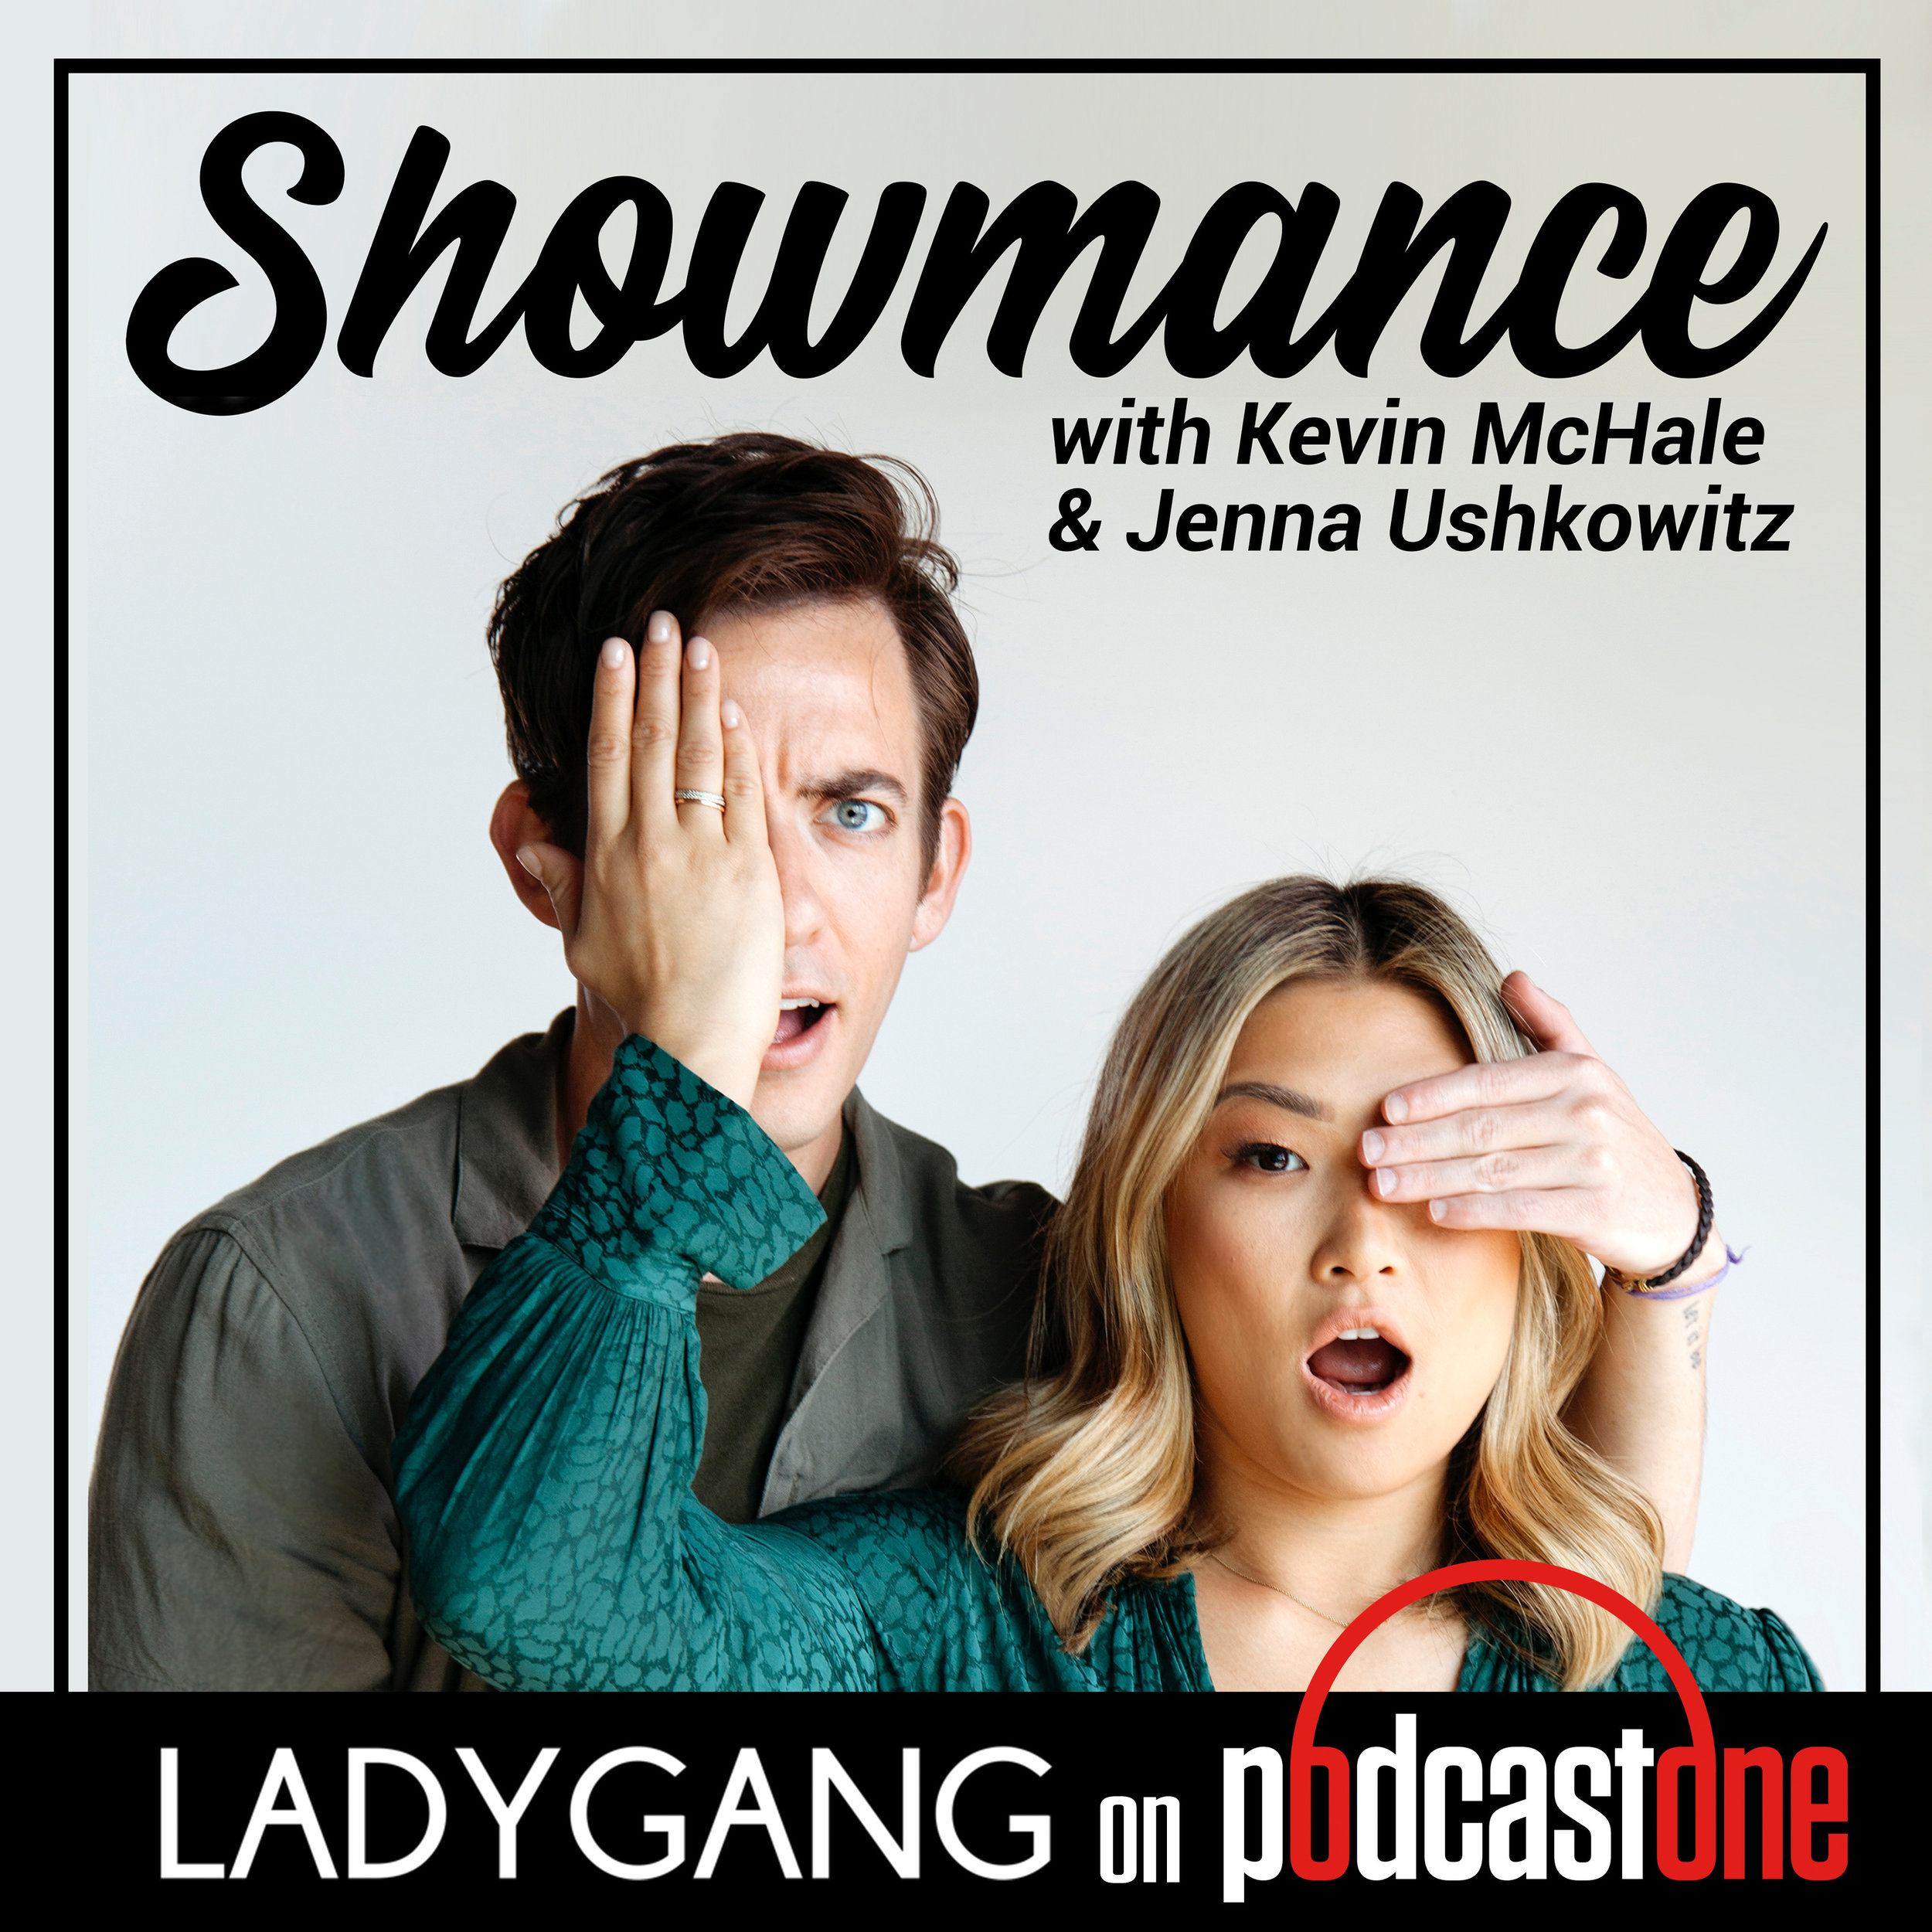 SHOWMANCE - Join former Glee stars and best friends - Jenna Ushkowitz and Kevin McHale - as they interview other dynamic duos and talk work-life balance & maintaining friendships through ALL the wild ups and downs. Jenna and Kevin will also take on listener questions and give advice about their secret obsession... weddings!